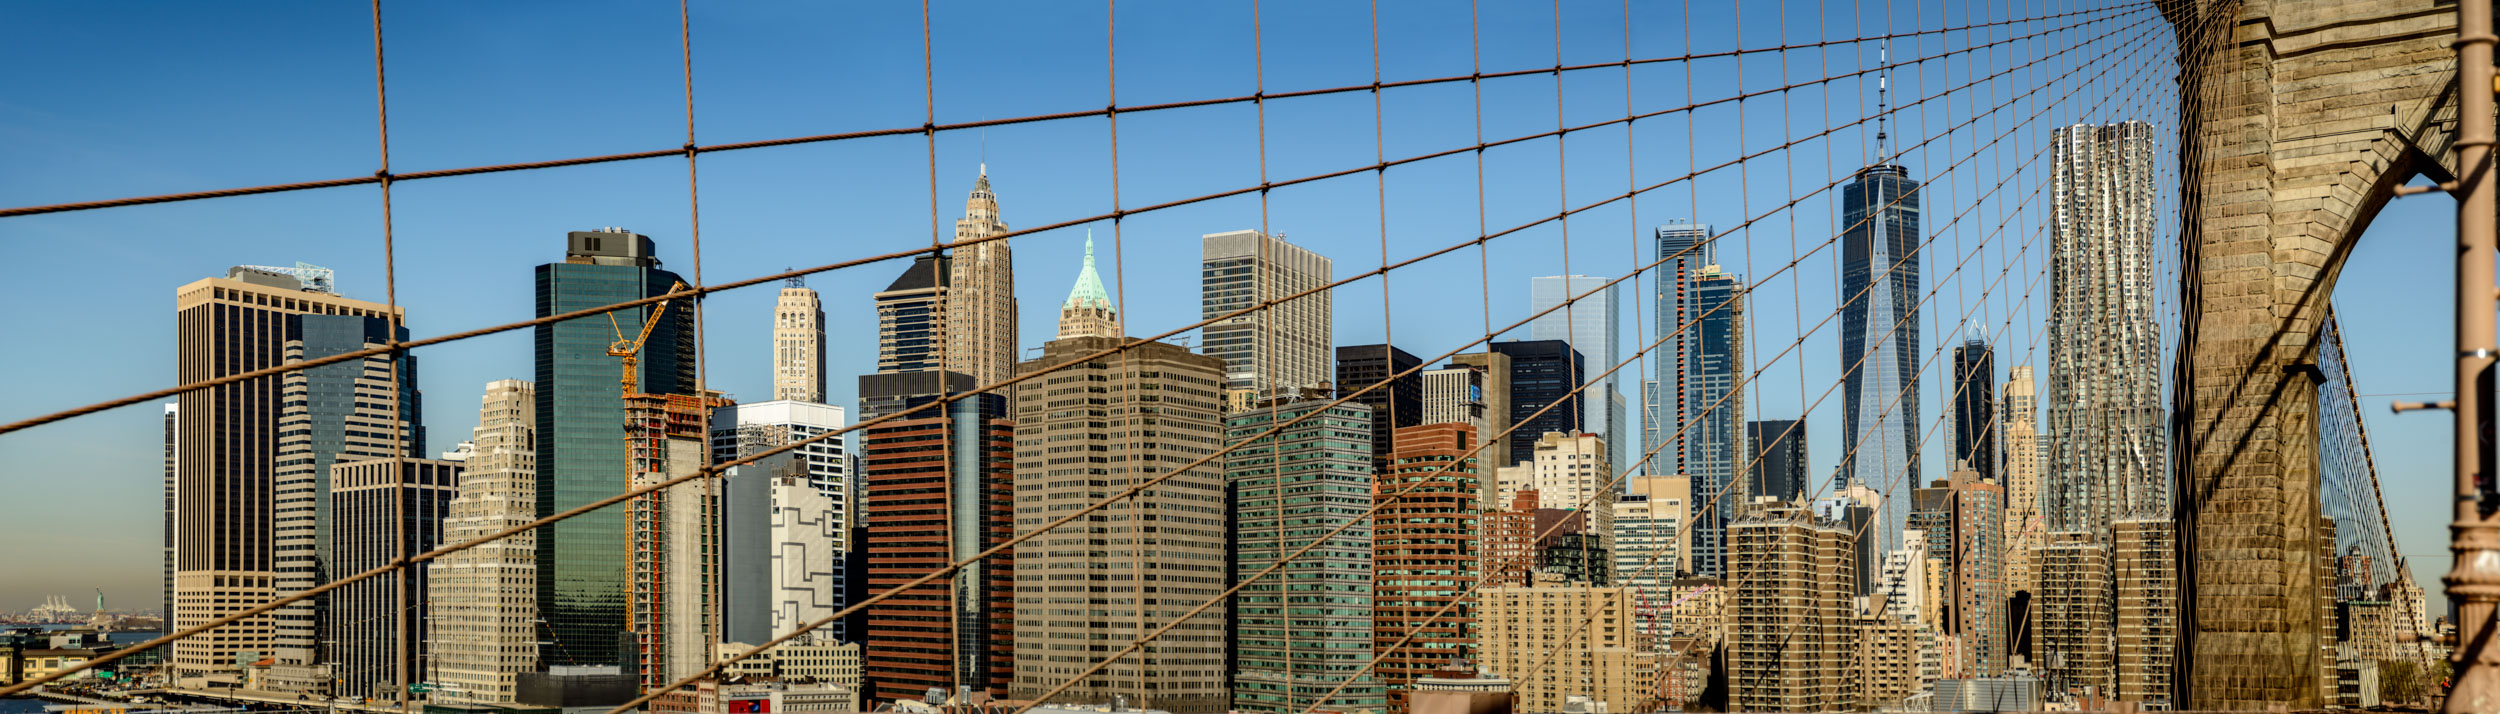 Cool lines formed by stringer cables on Brooklyn Bridge with view of Manhattan.